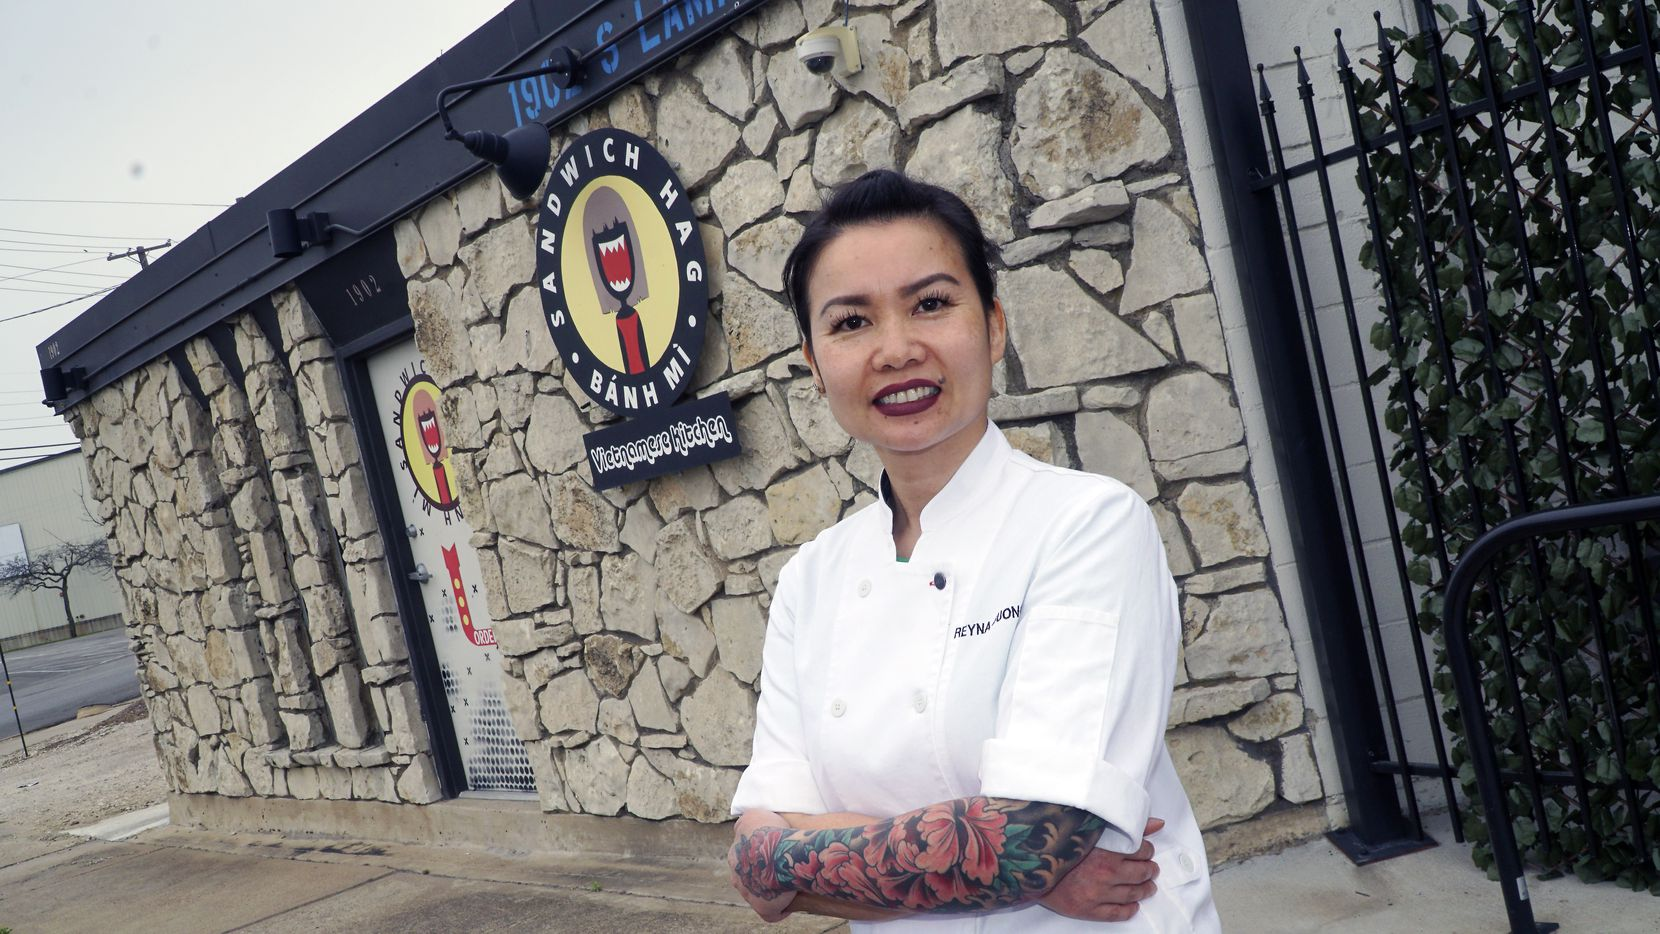 Reyna Duong, owner of Sandwich Hag in Dallas, Texas on Monday, March 2, 2020.  (Lawrence Jenkins/Special Contributor)